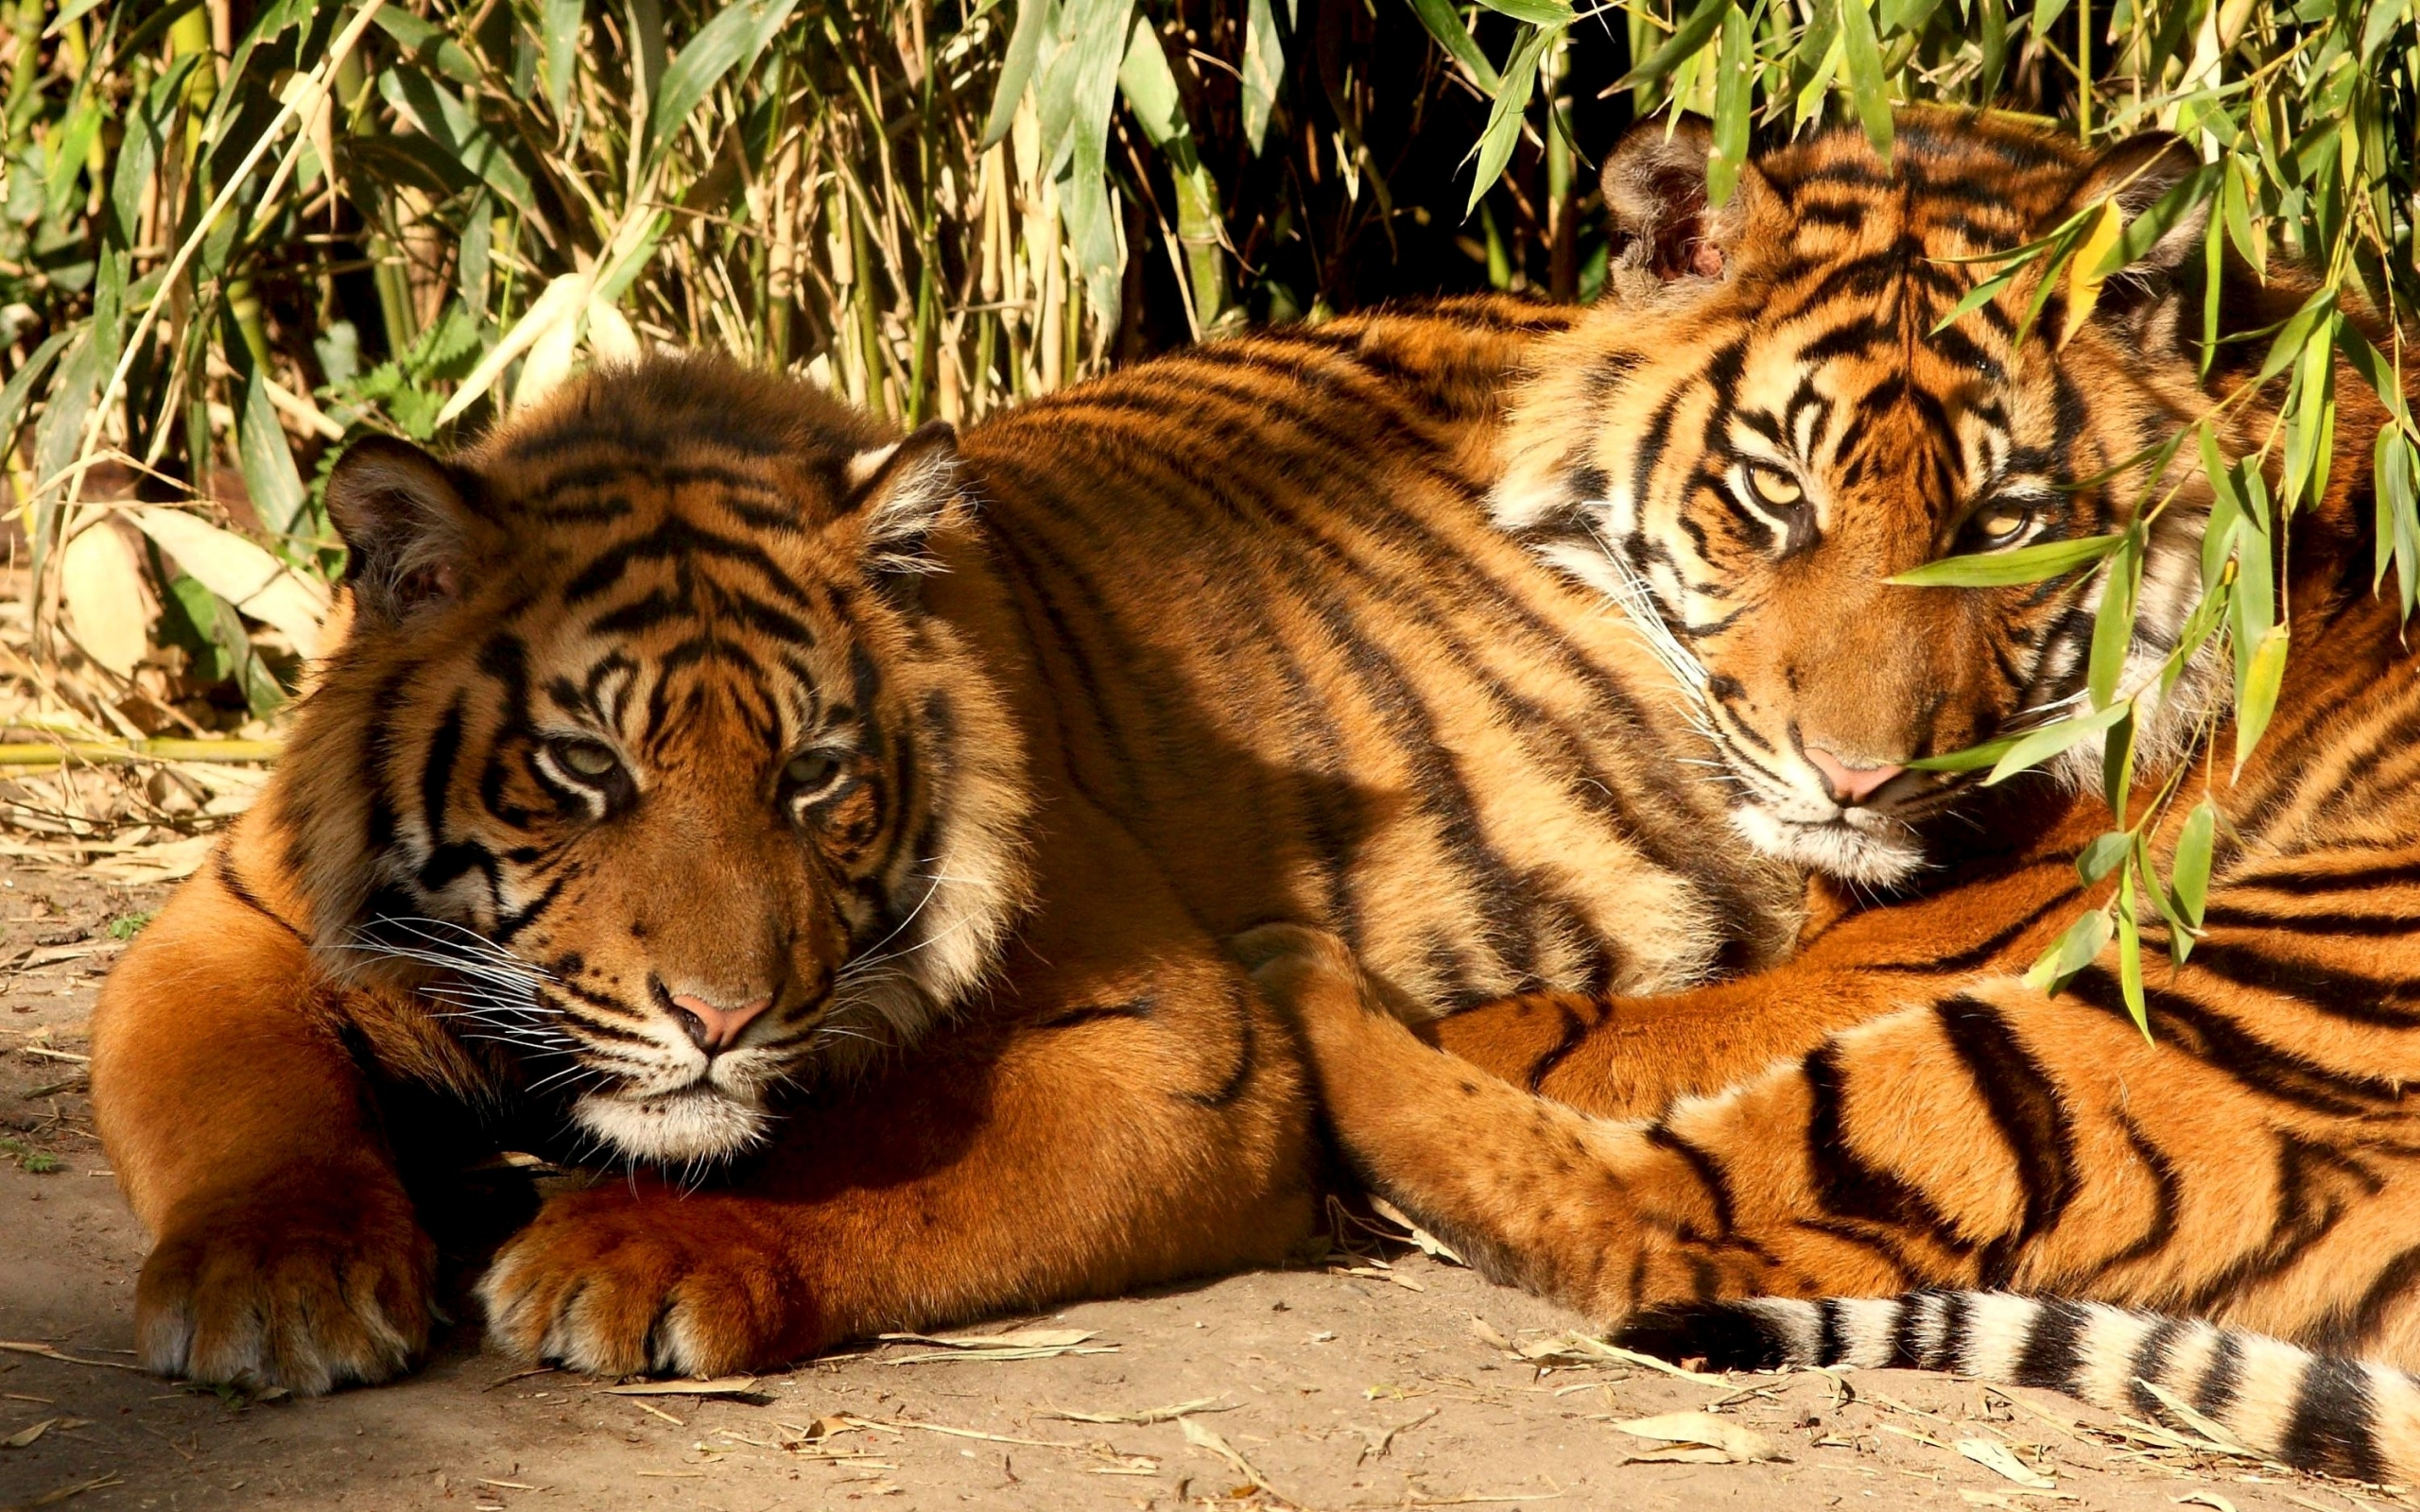 42647 download wallpaper Animals, Tigers screensavers and pictures for free